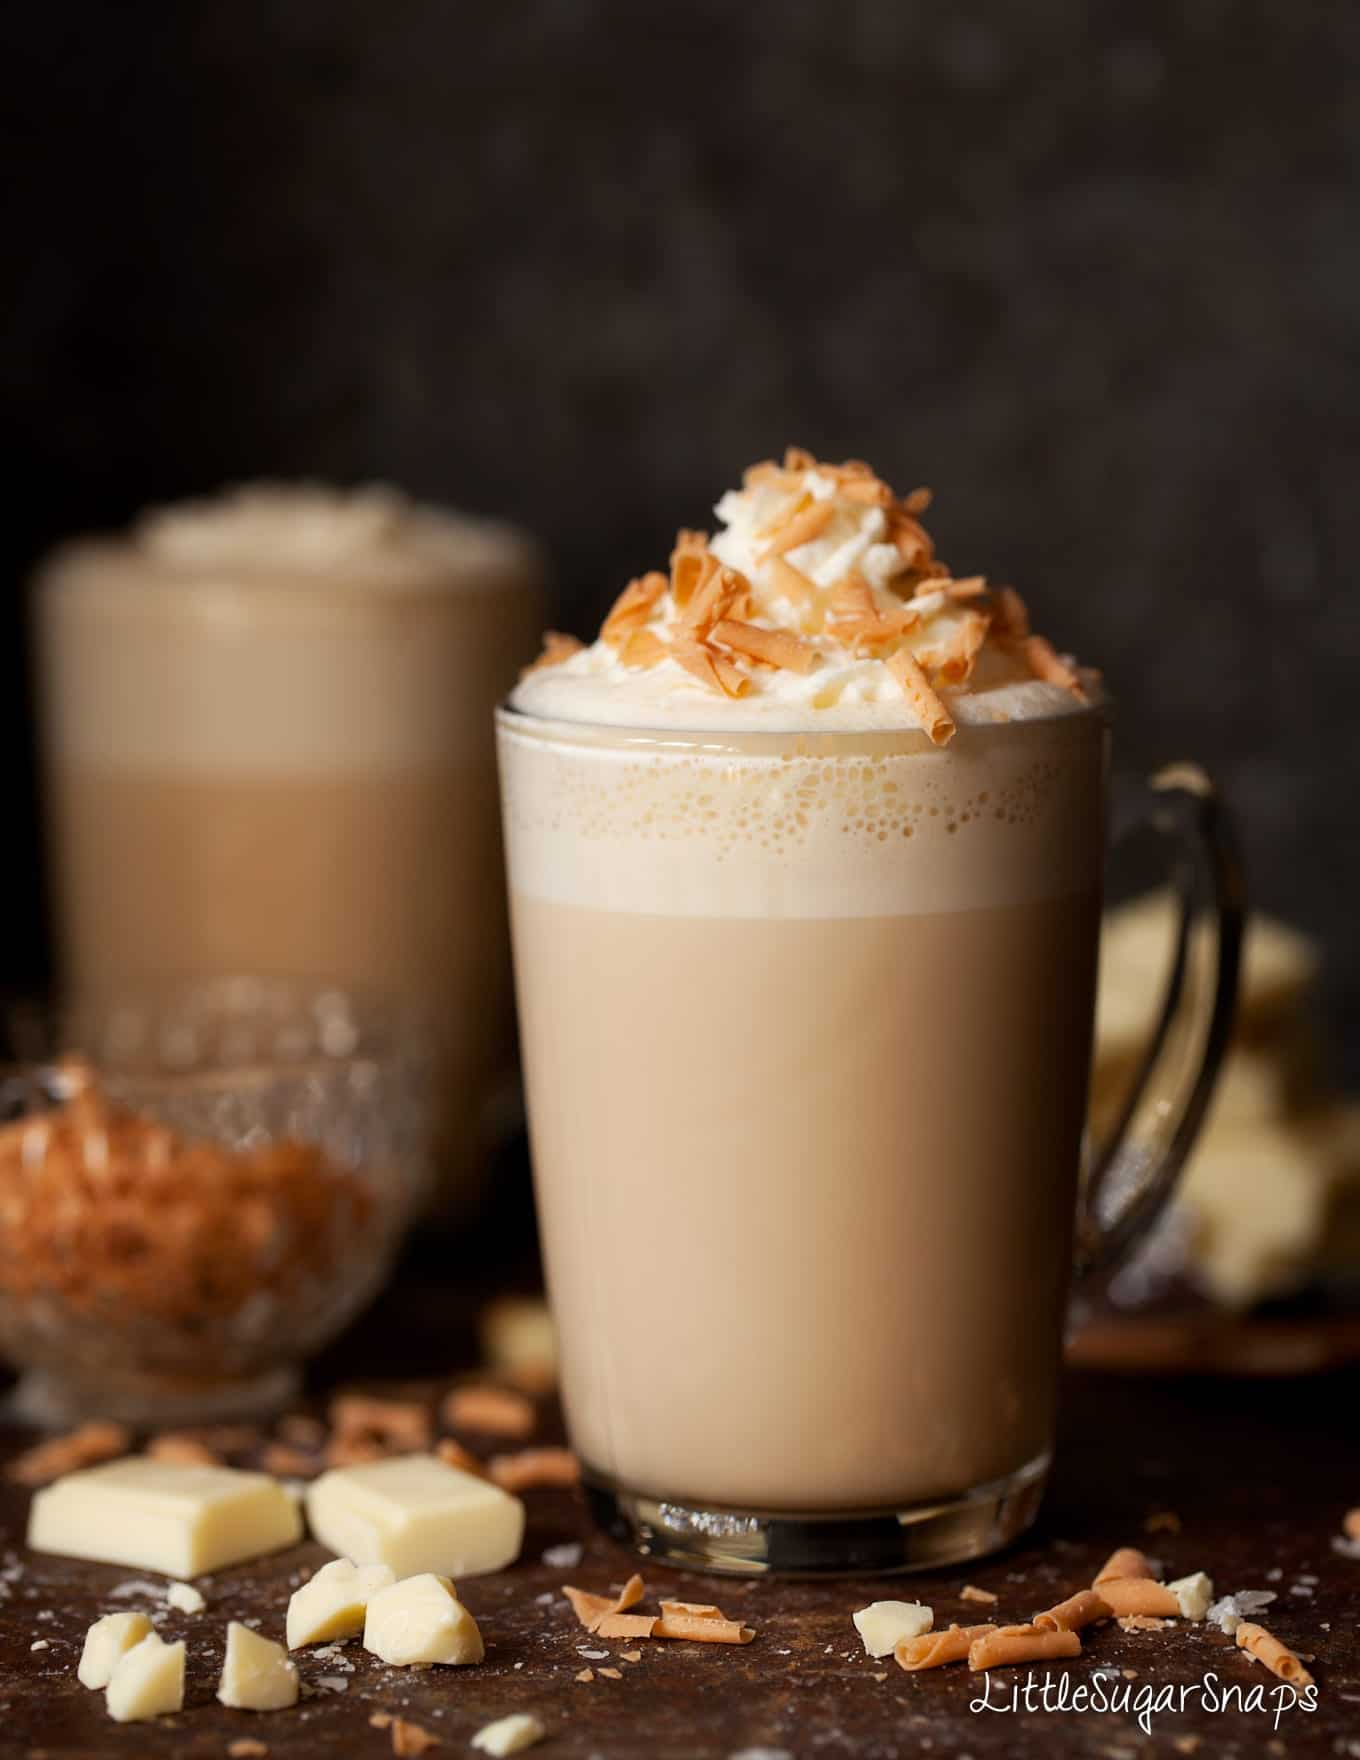 Caramelised White Hot Chocolate in a glass mug with whipped cream and caramel flakes.